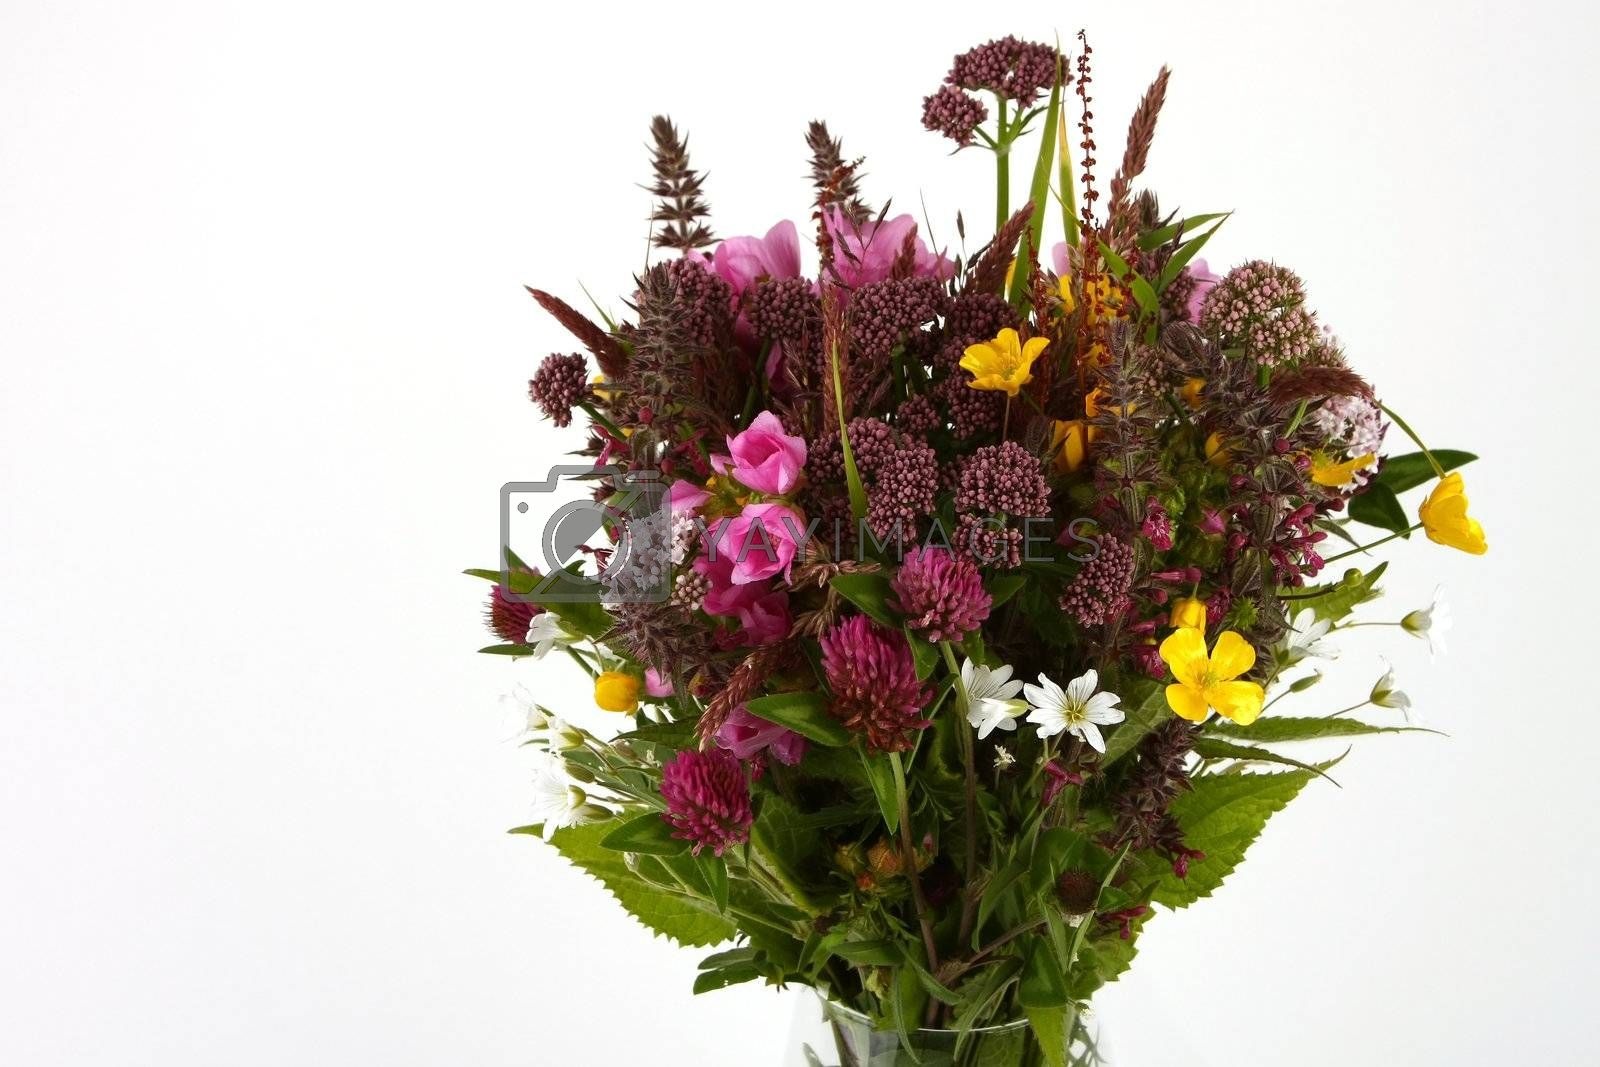 Royalty free image of Flower bouquet  by monicajohansen